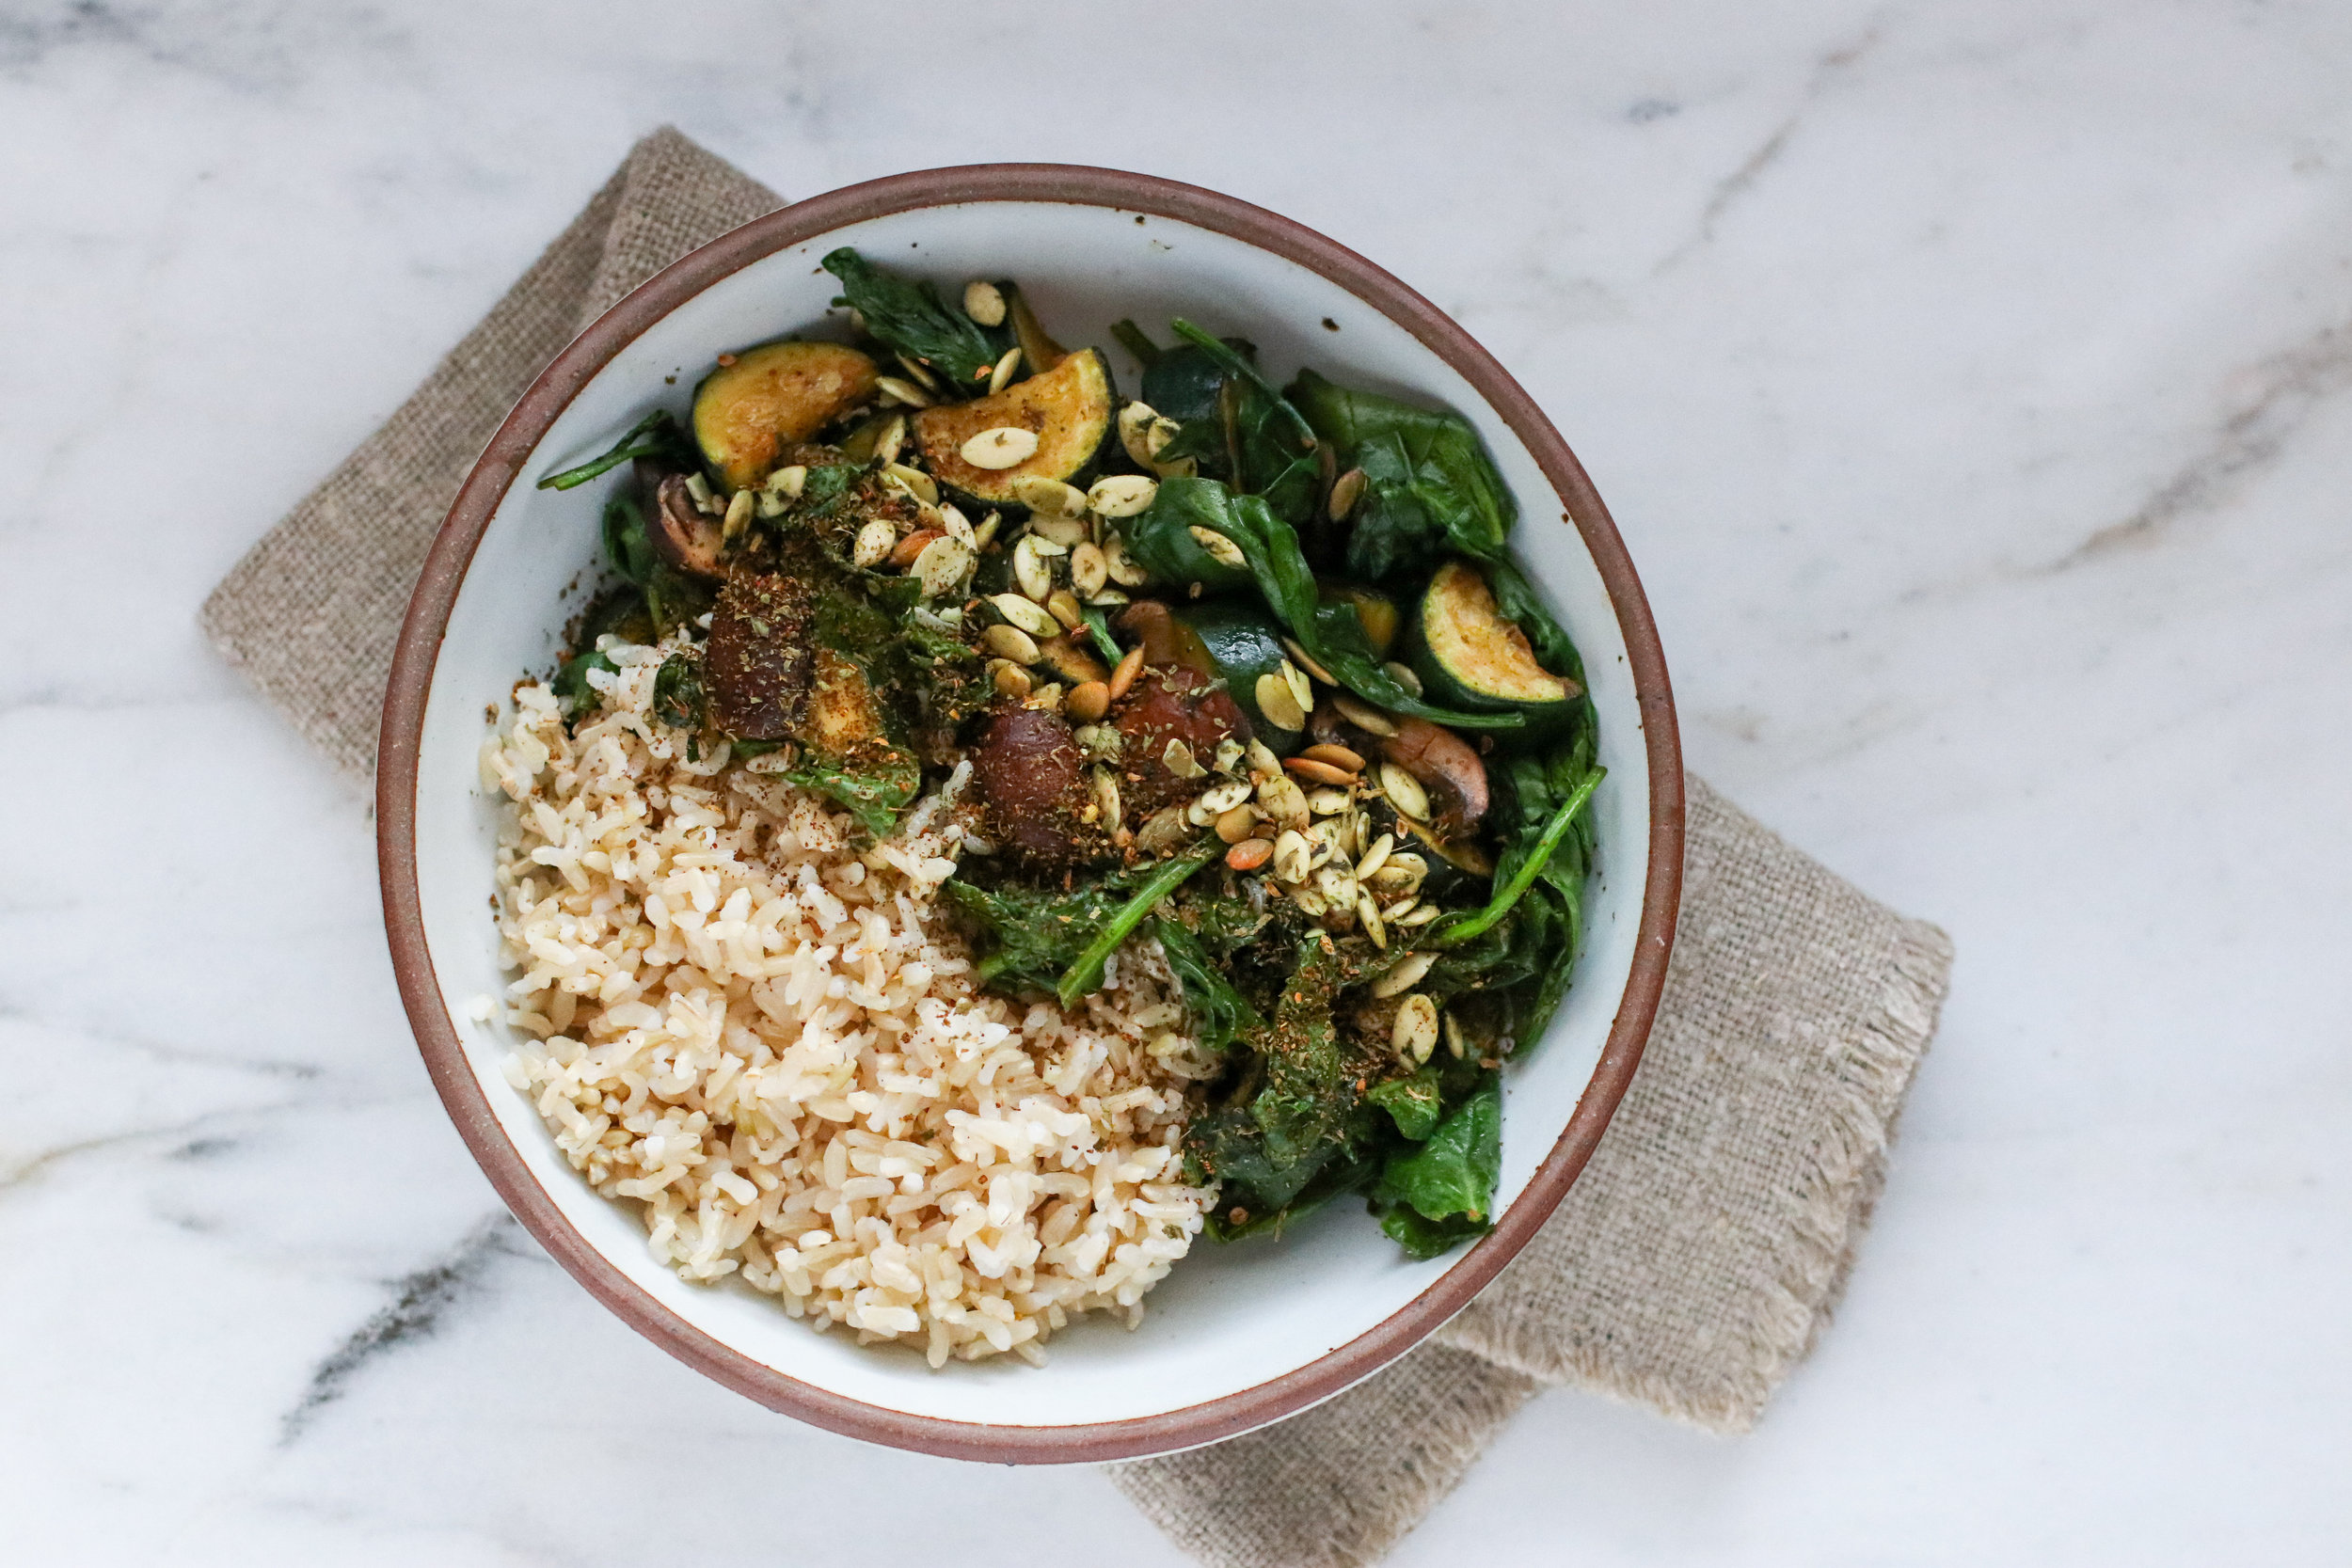 Brown Rice + Sautéed Mushrooms + Zucchini + Spinach all topped with Pumpkin Seeds